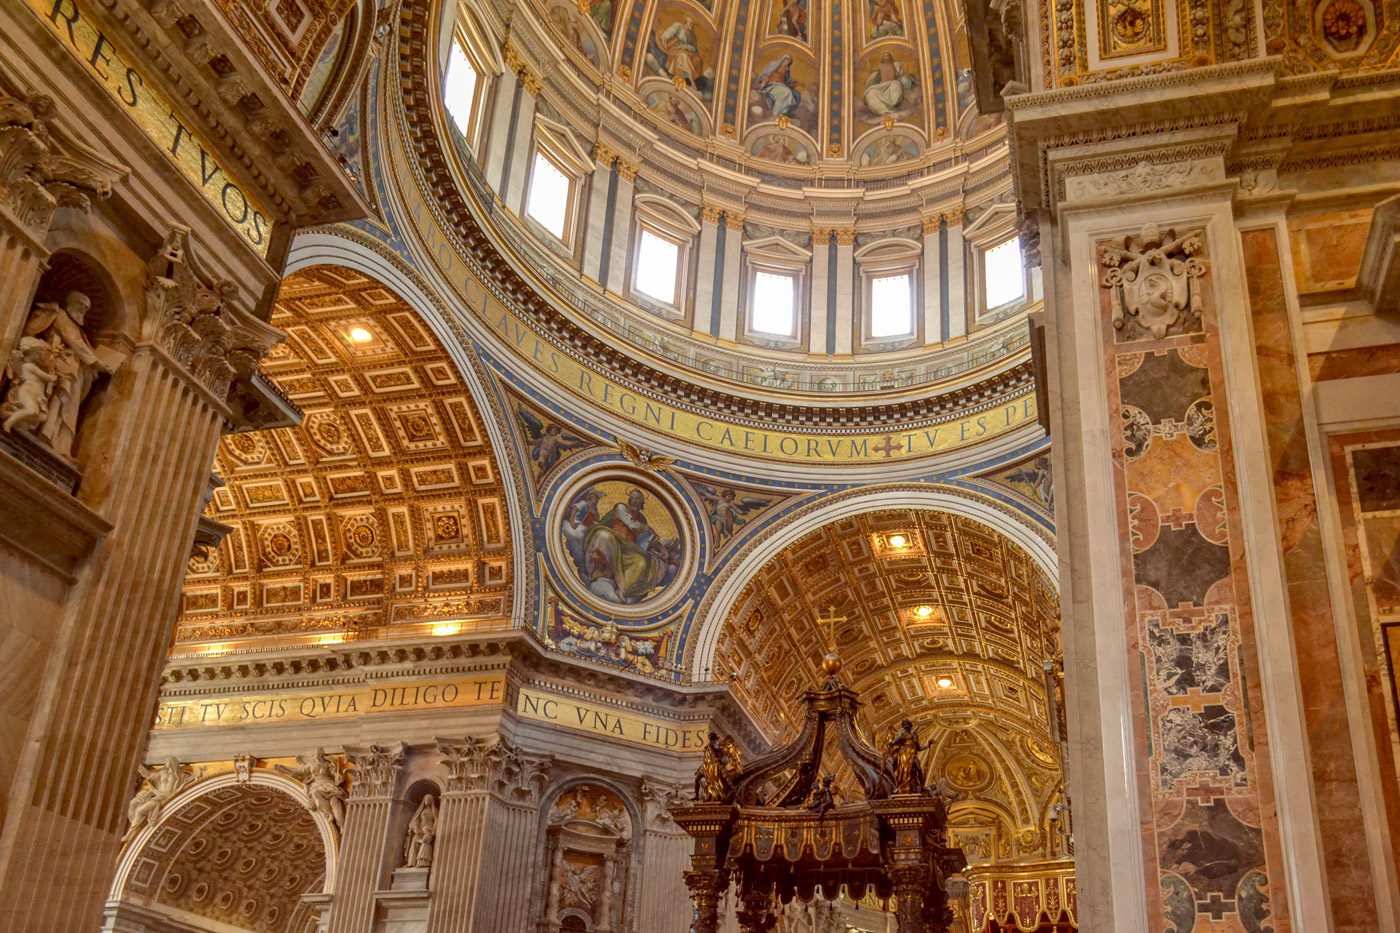 Interior of the Basilica of St. Peter